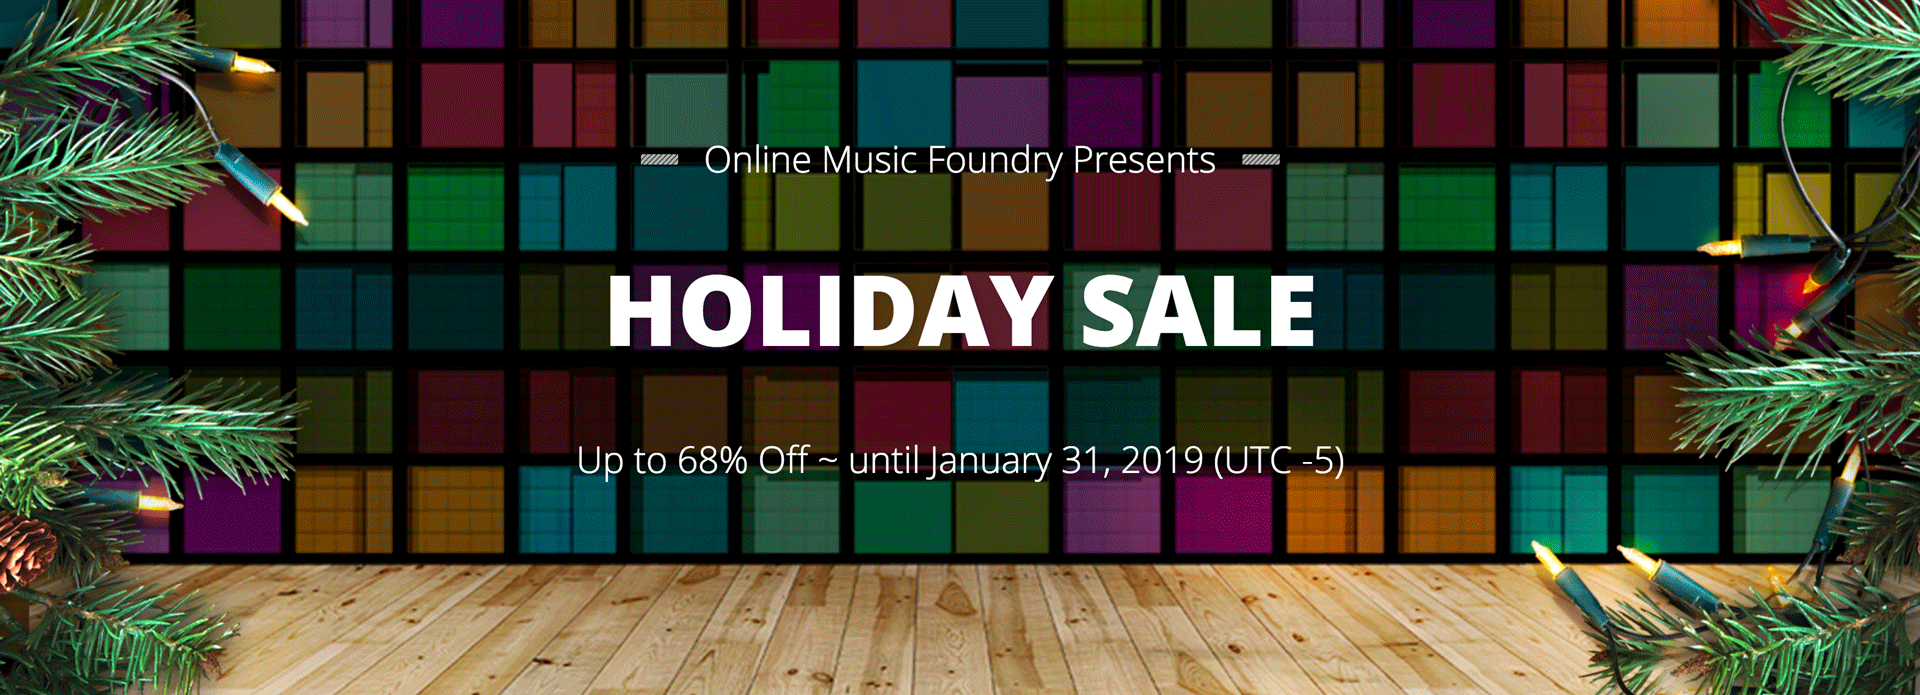 2018 Holiday Sale